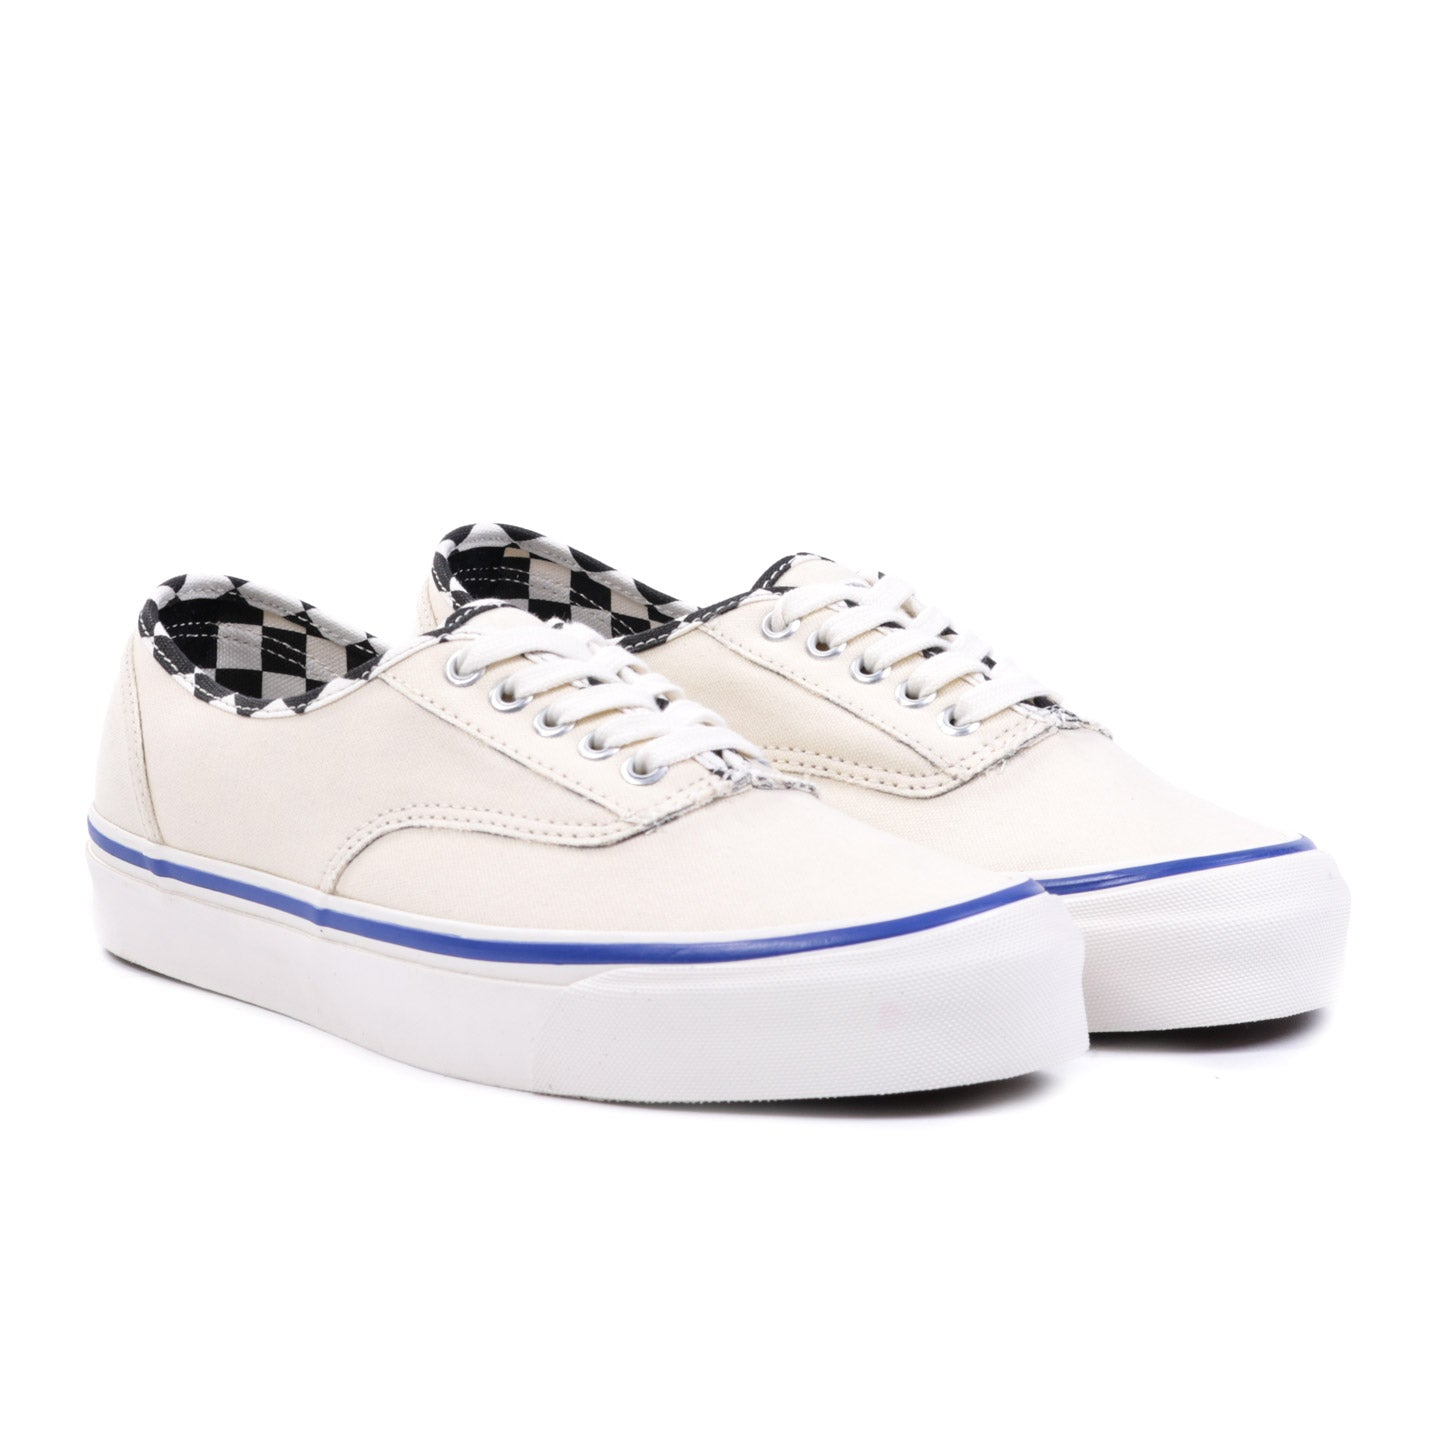 VAULT BY VANS OG AUTHENTIC LX INSIDE OUT CHECKERBOARD